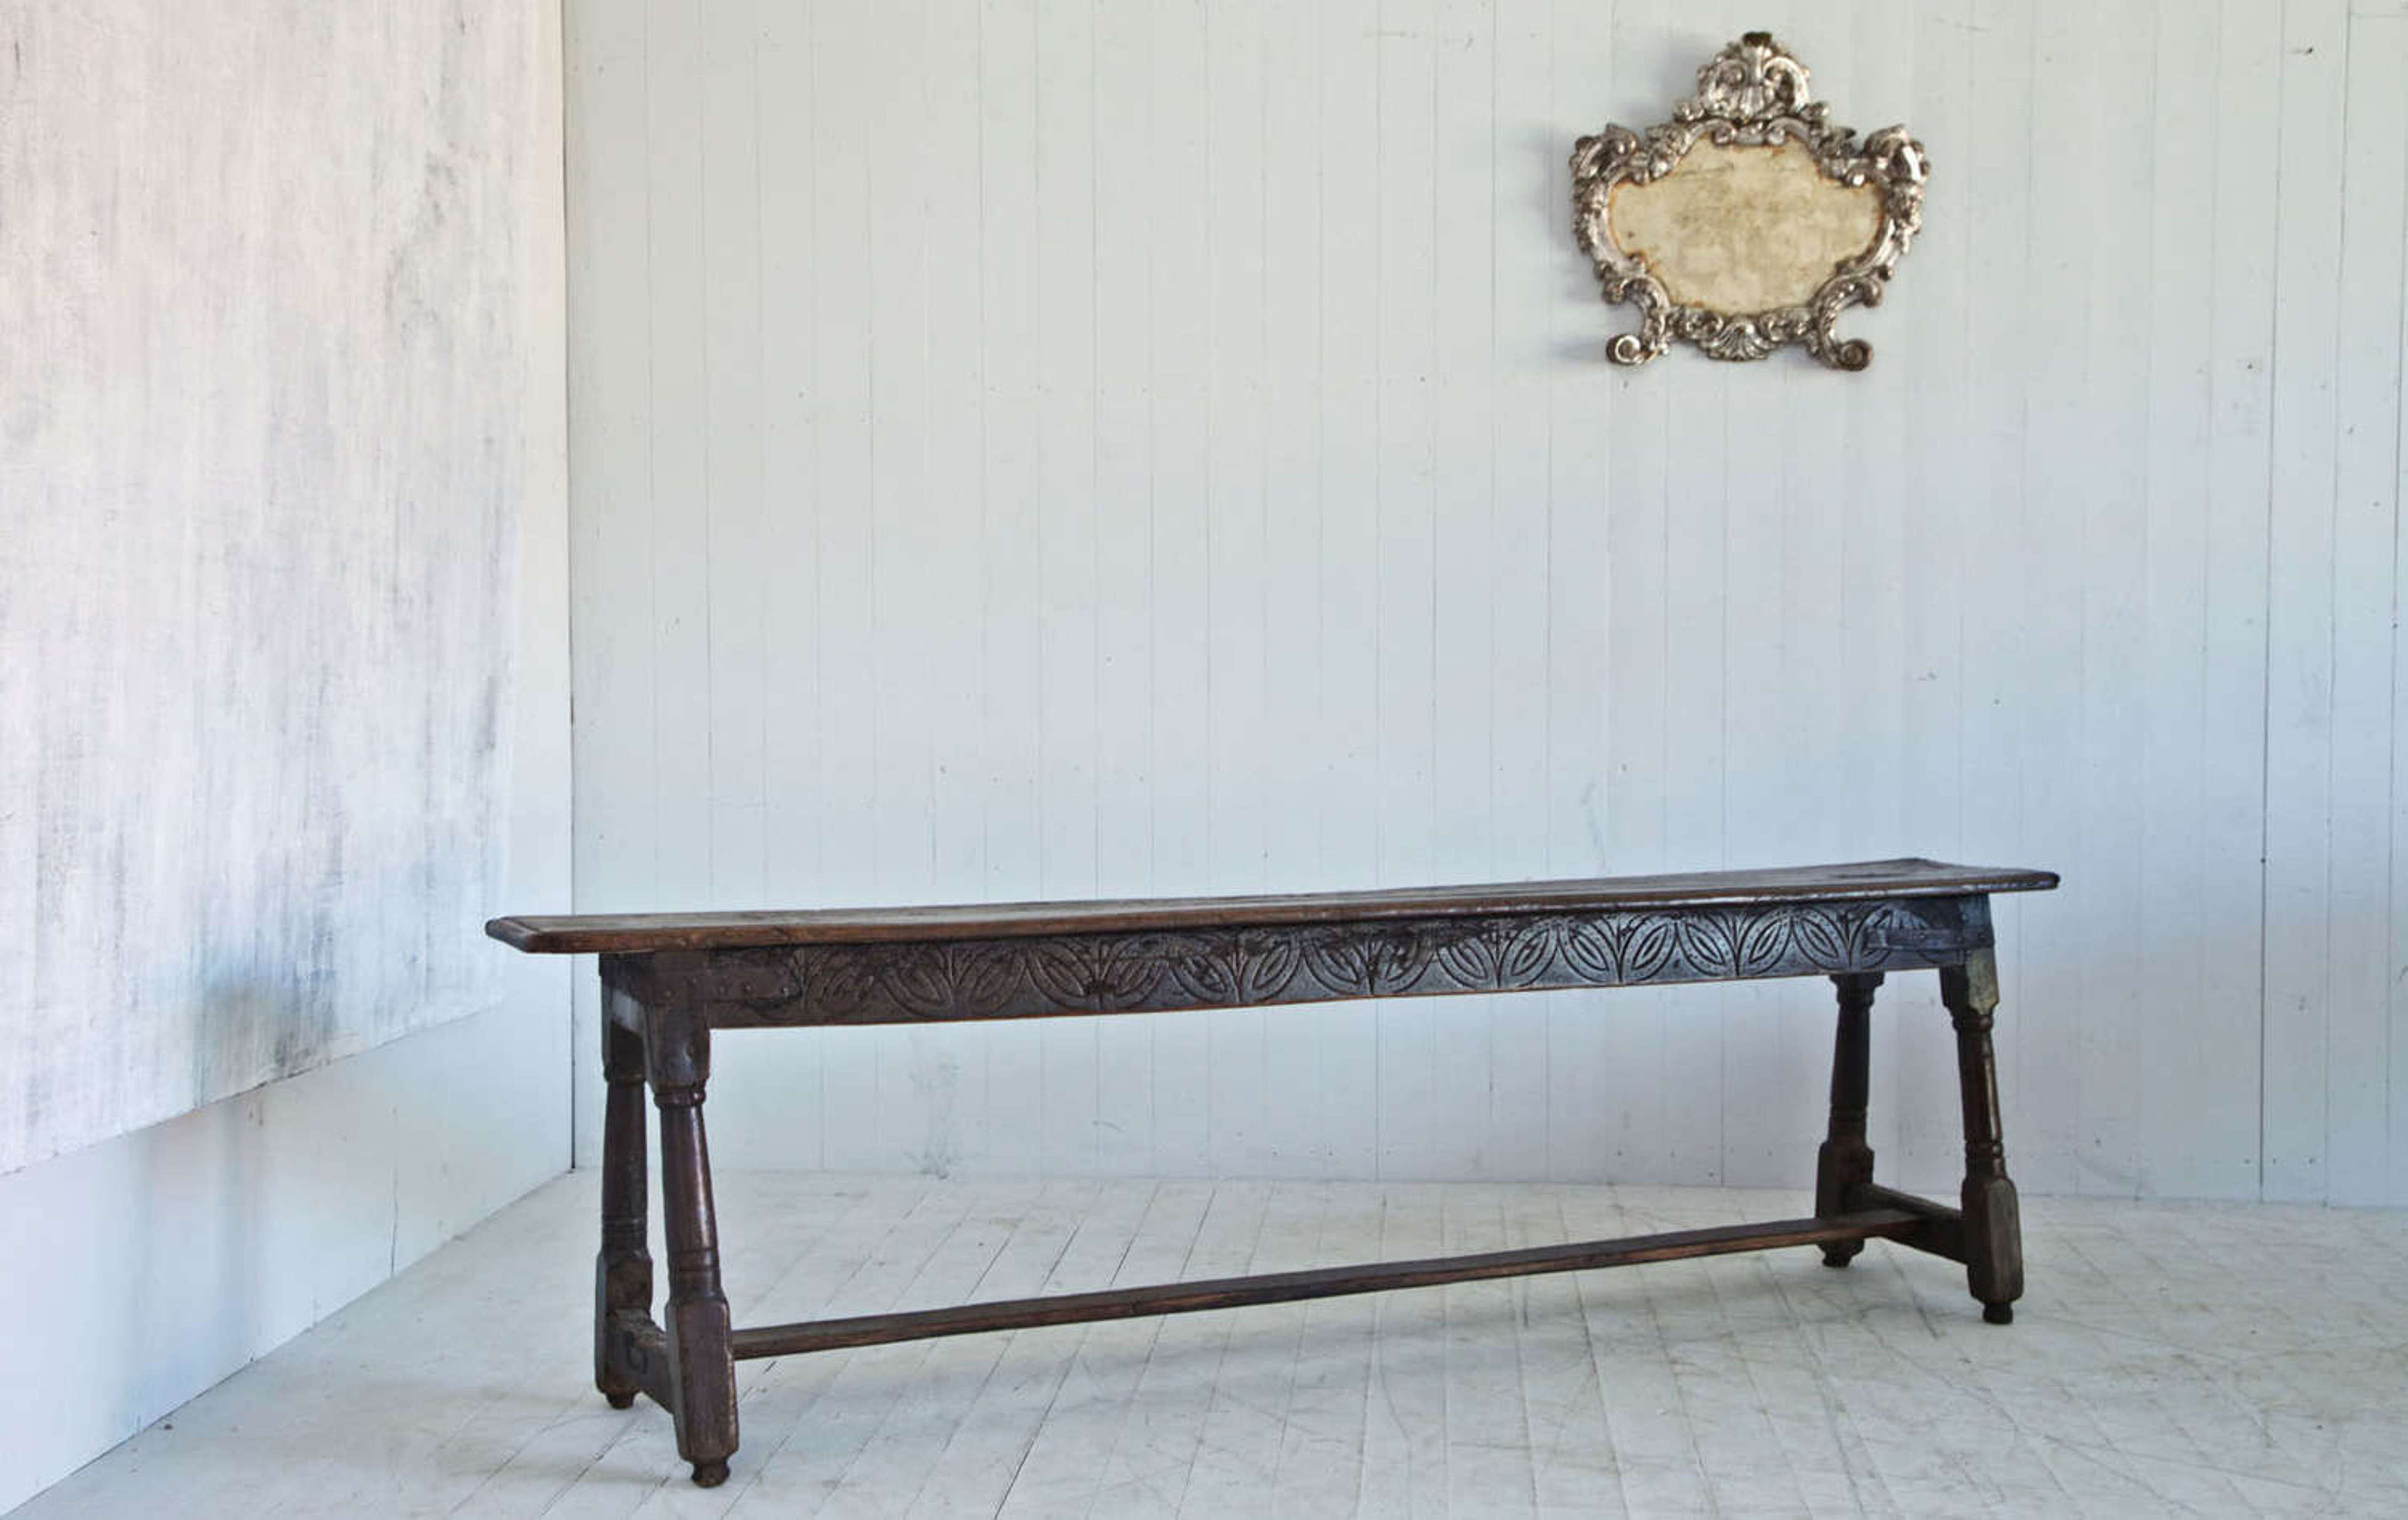 Carved bench, table, 18th Century table